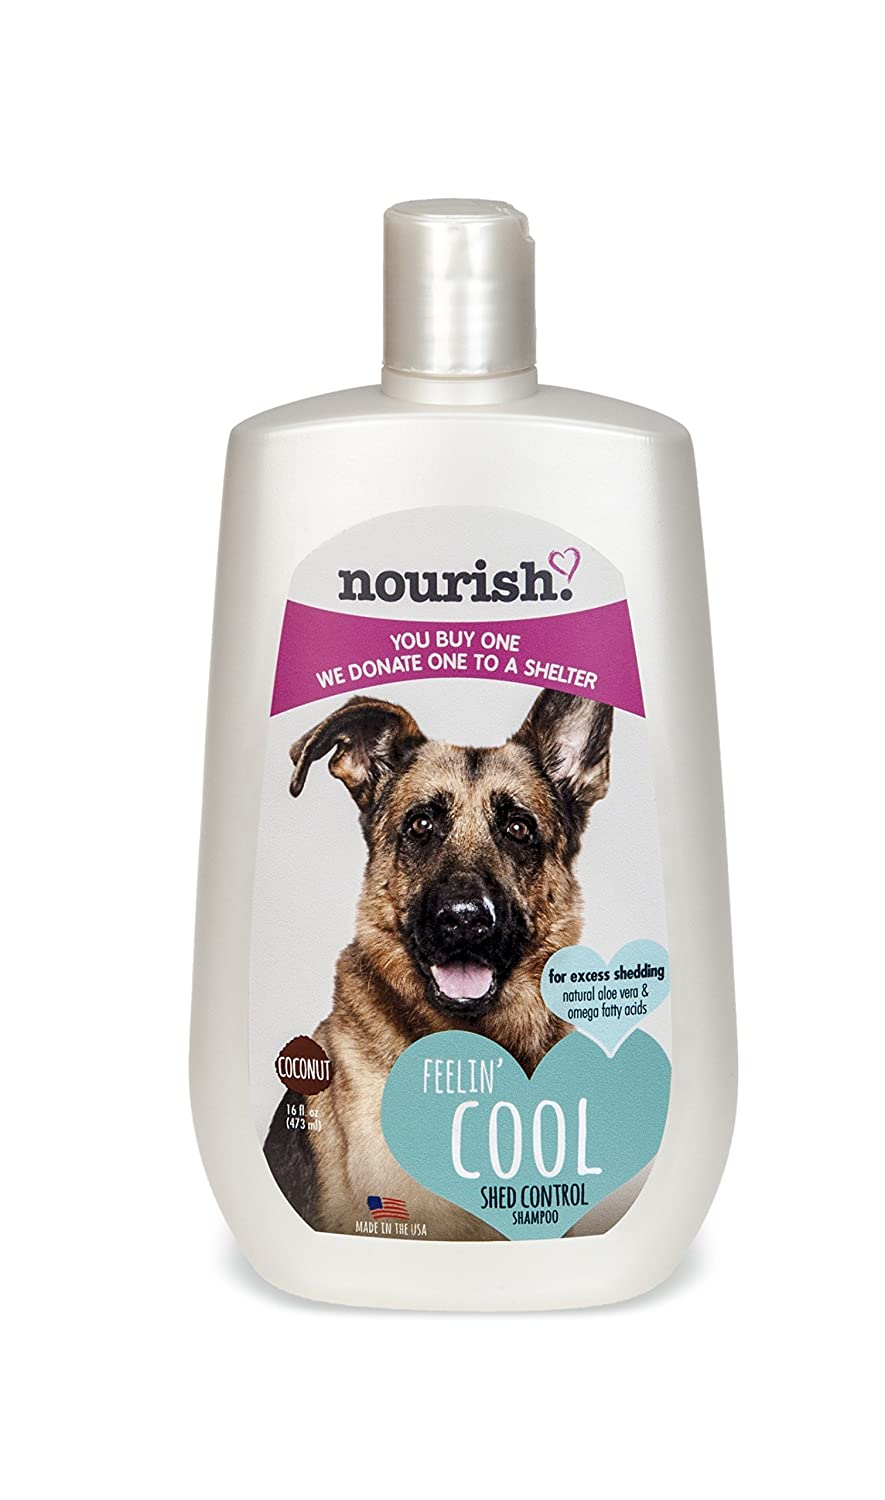 Nourish Shed Control Dog Shampoo, Natural Coconut Verbena 16 oz You Buy 1, We Donate 1 to a Shelter, Made in USA, PH Balanced